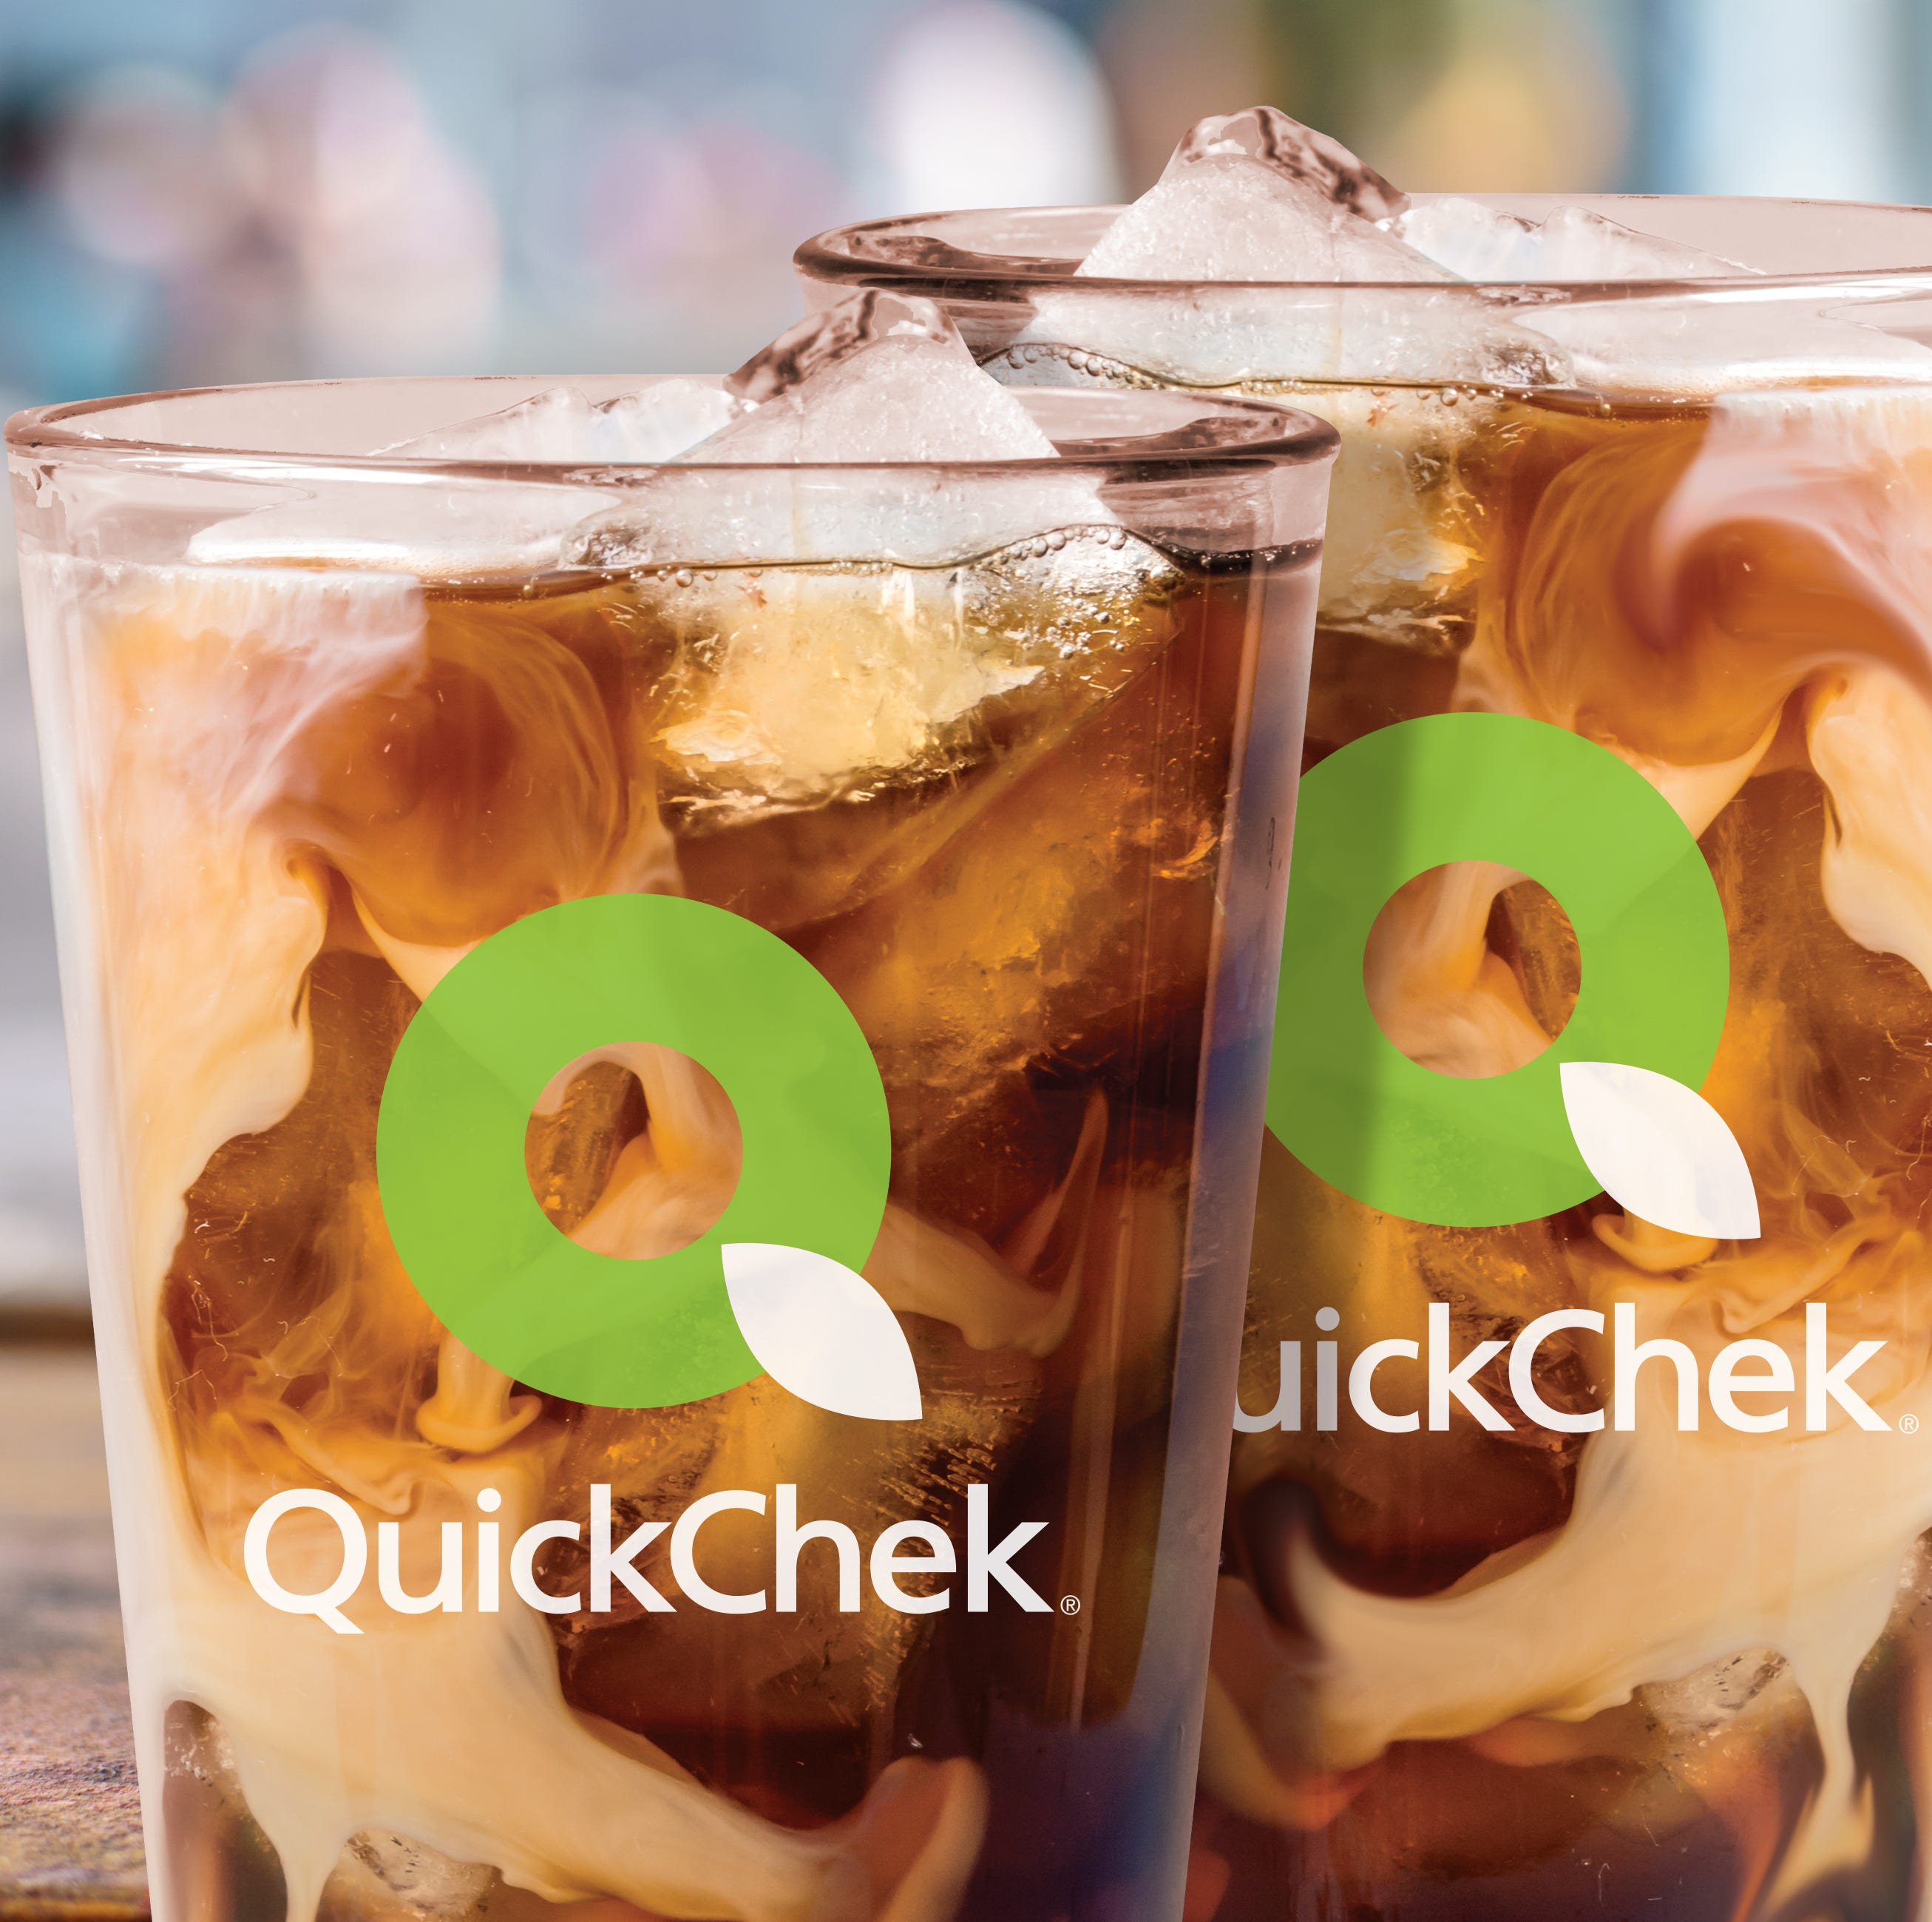 QuickChek free coffee: Find out how to get a cup